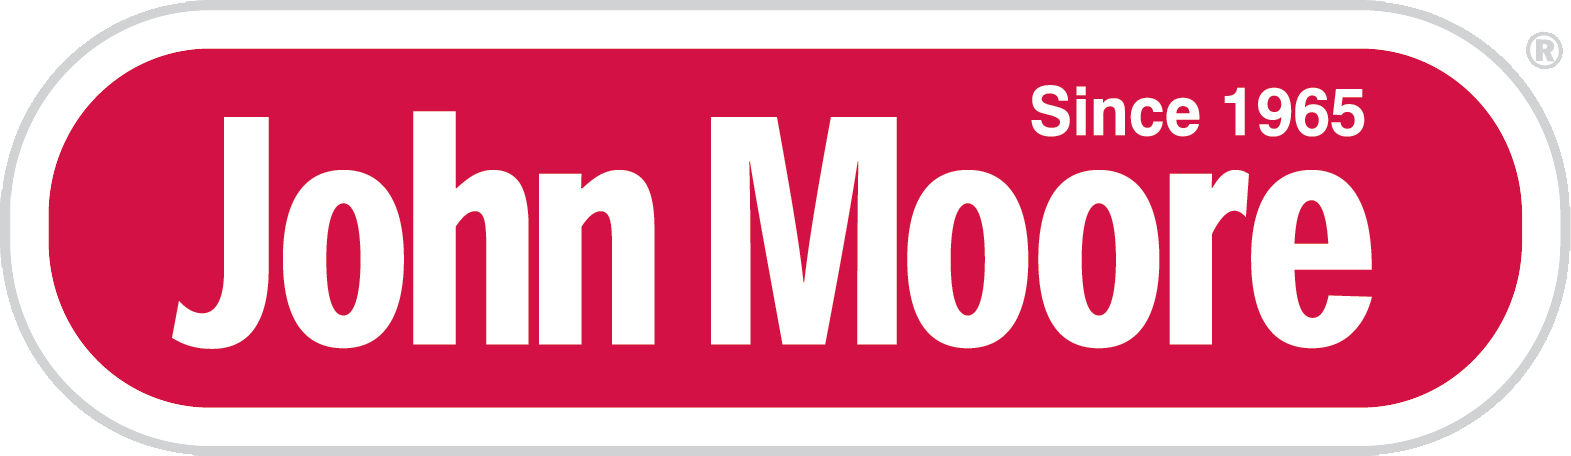 John Moore Plumbing, Air Conditioning & Electrical Home Services